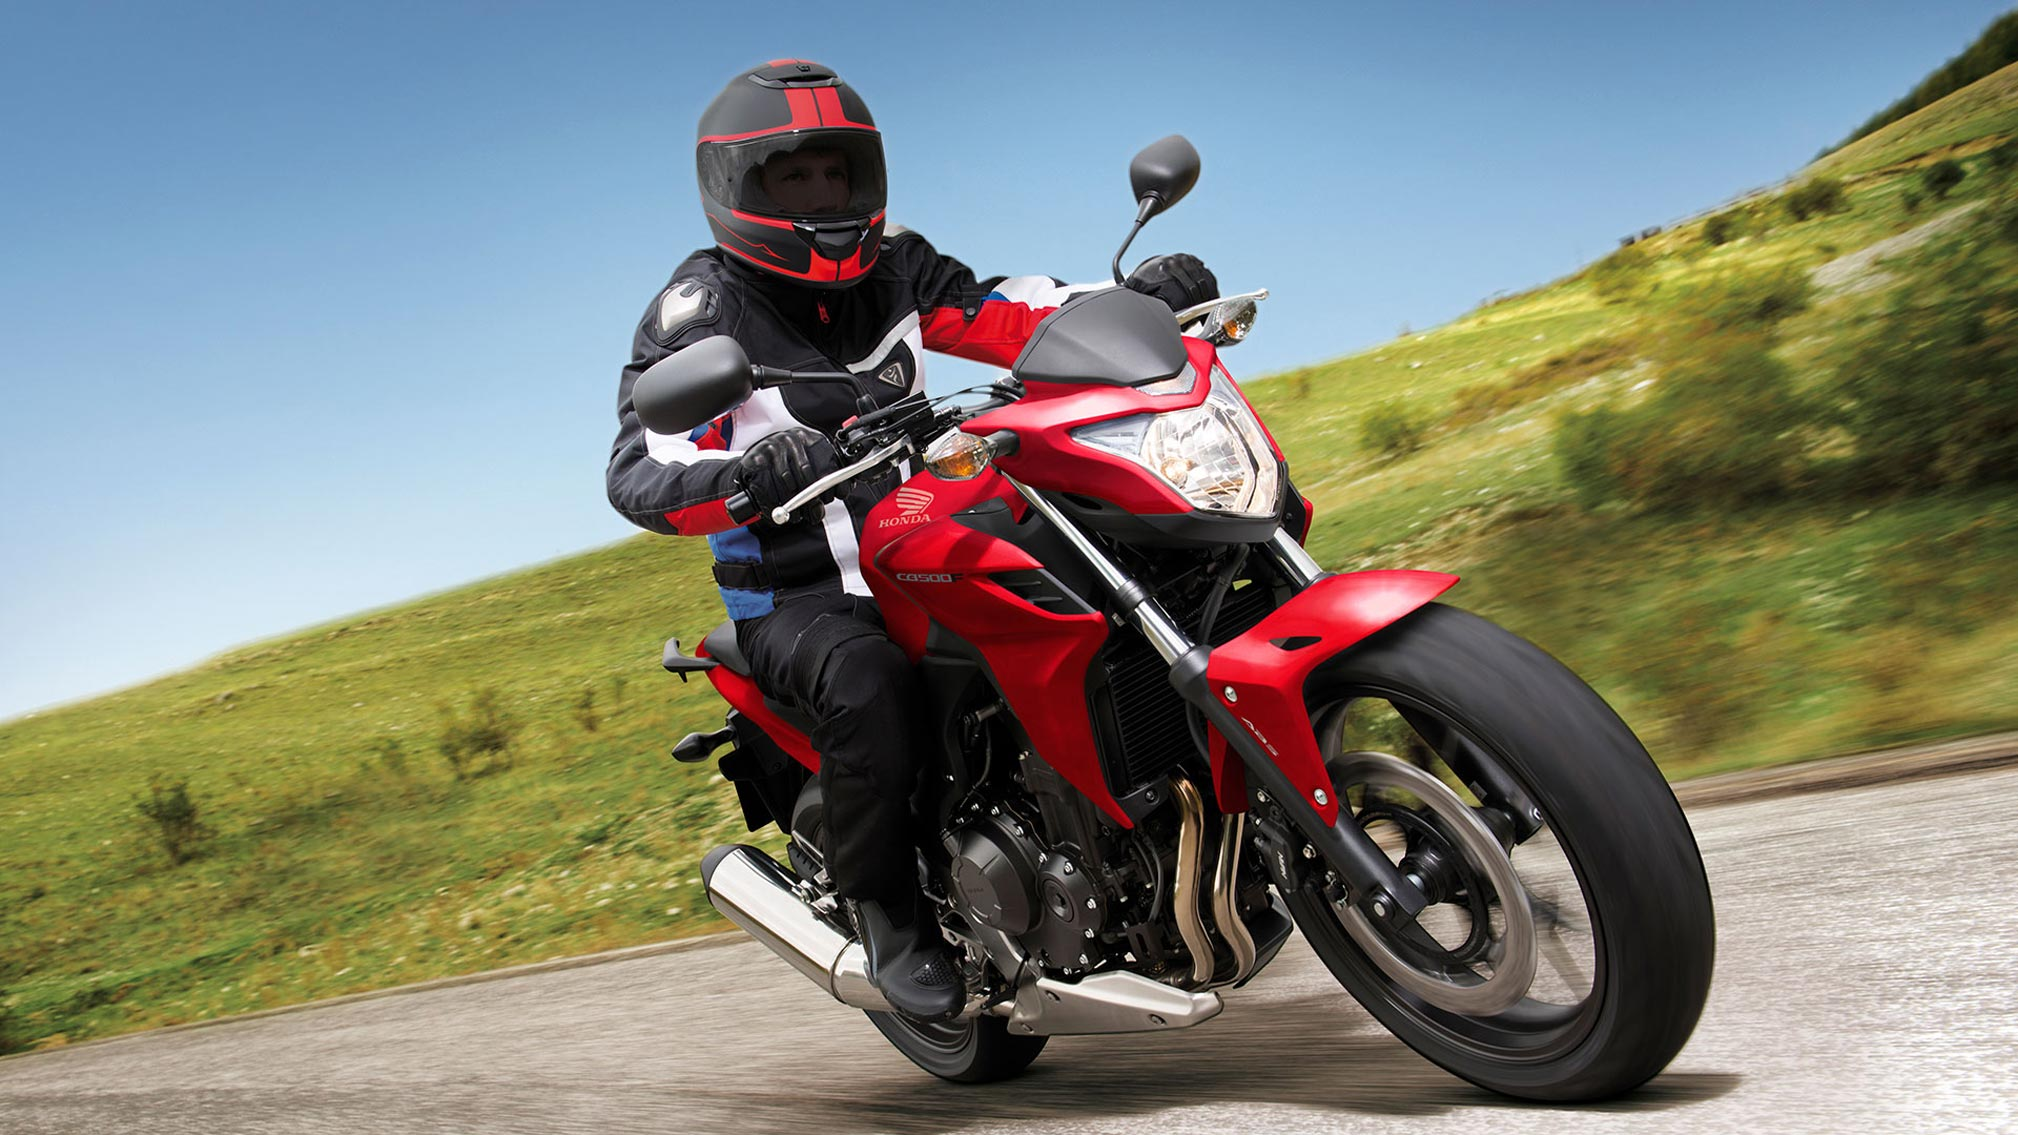 2018 honda cb500f abs review totalmotorcycle for Honda classic 2018